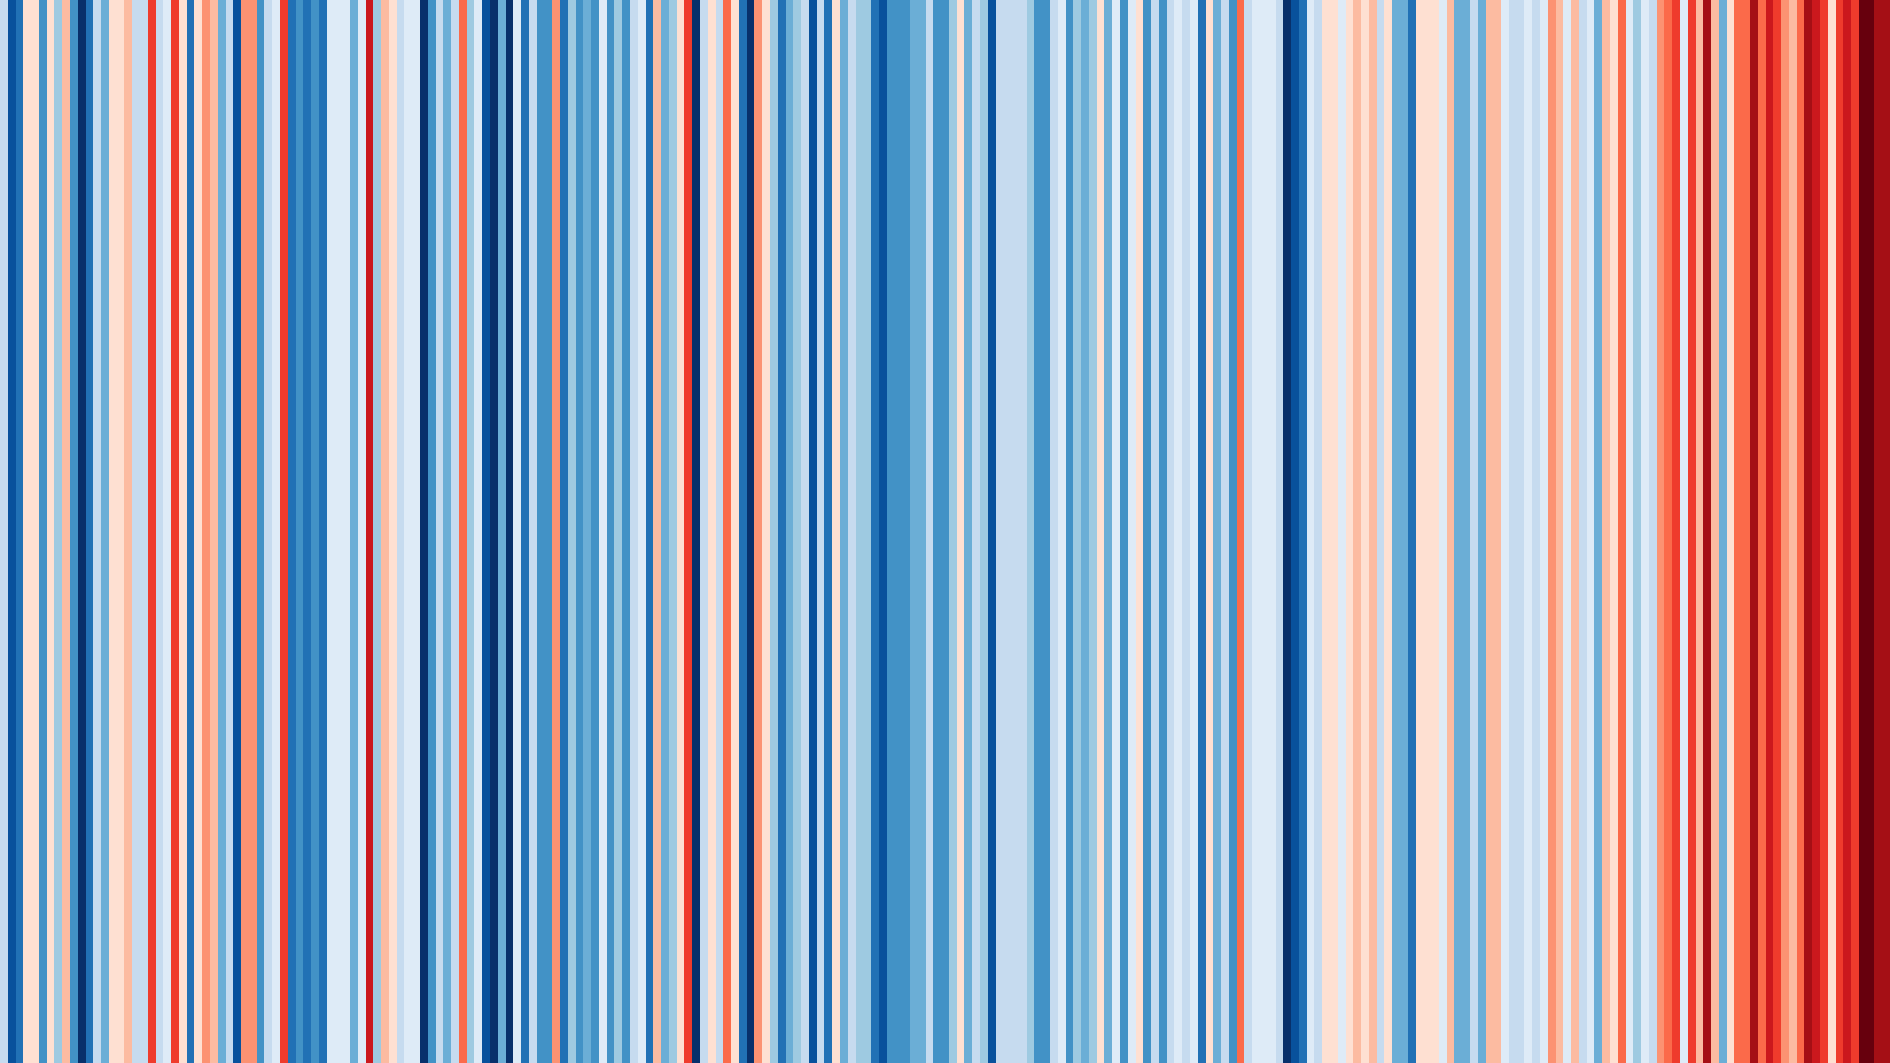 Warming stripes - Annual temperatures in Vienna from 1775-2017